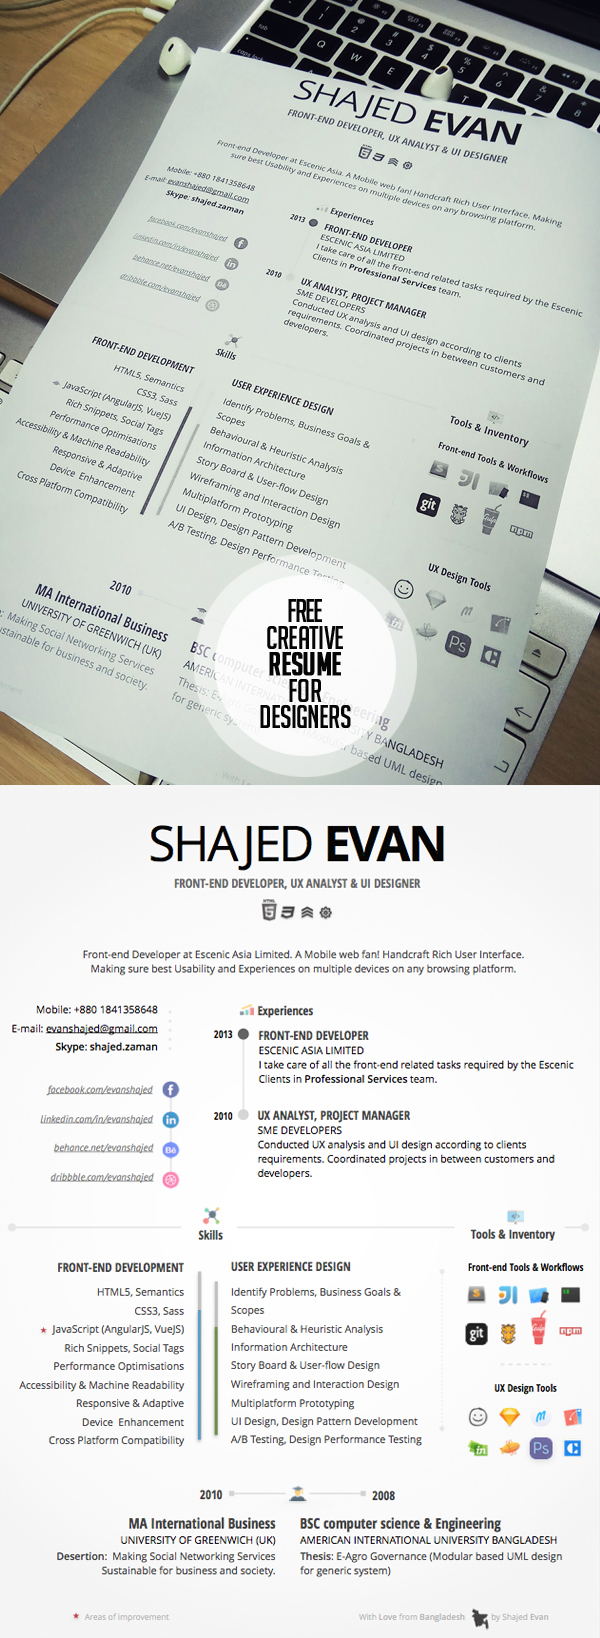 Free Creative Resume For Designers U0026 Developers  Creative Resume Templates Free Download